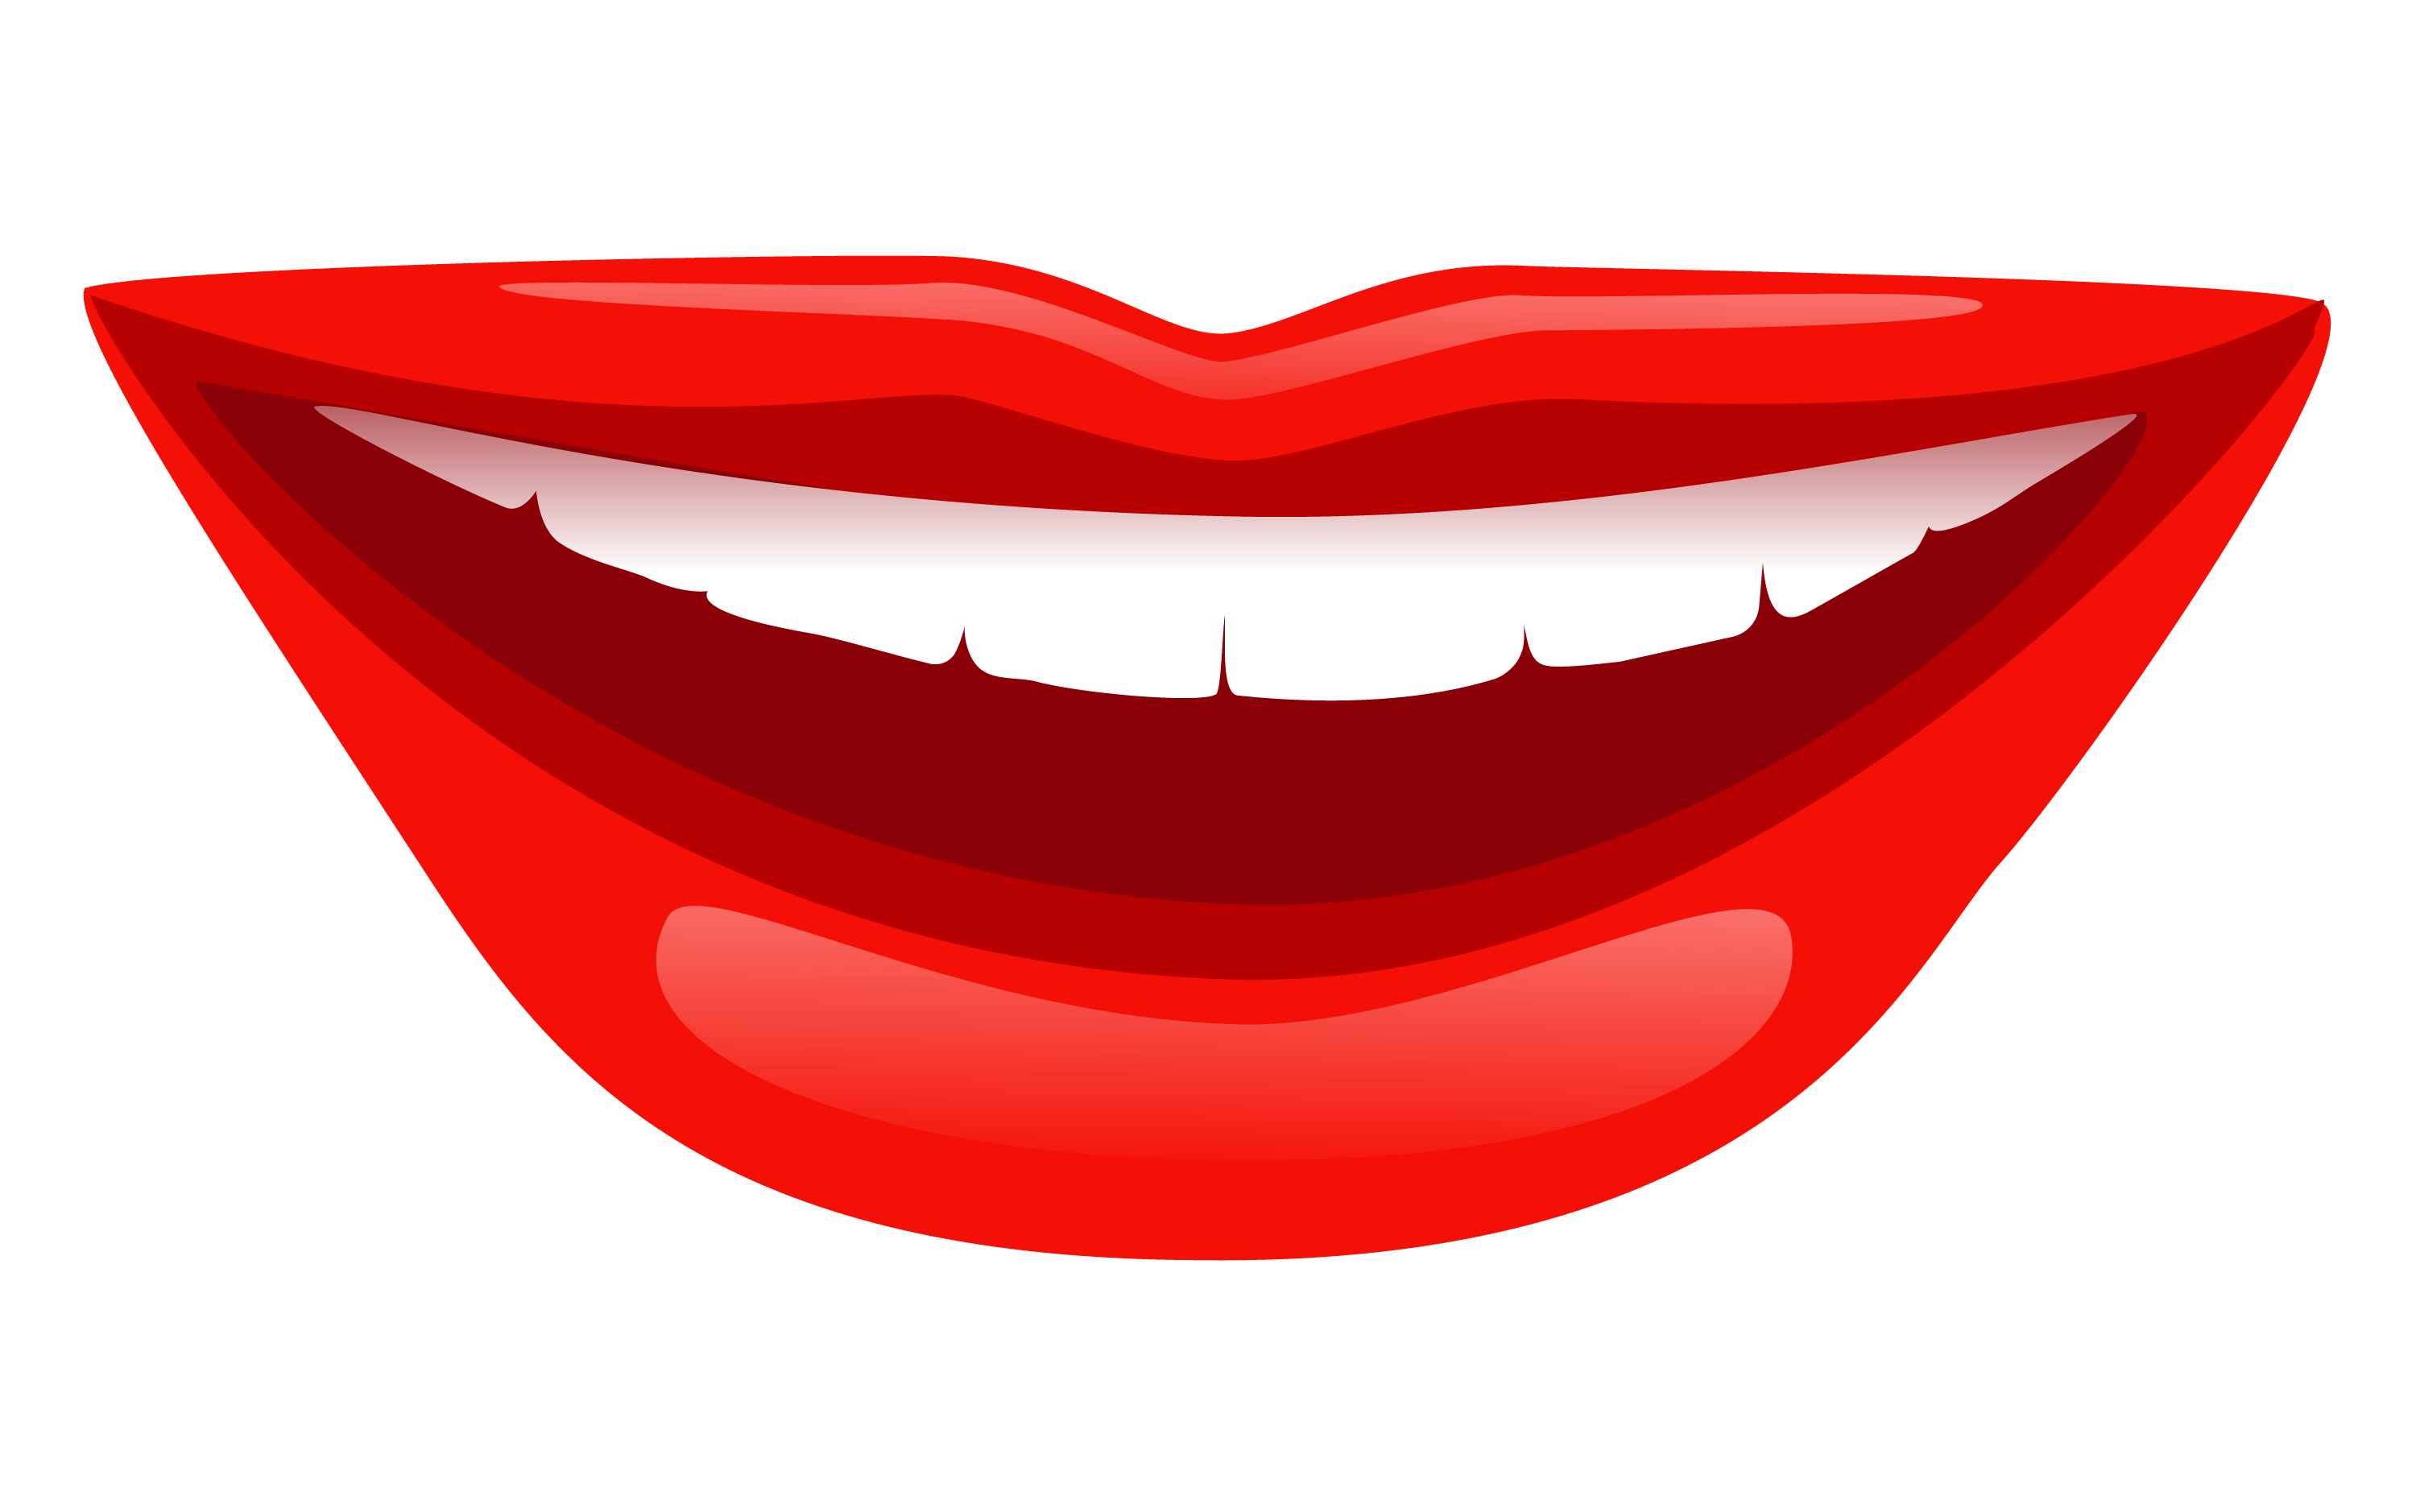 Mouth Smile PNG Image - PurePNG